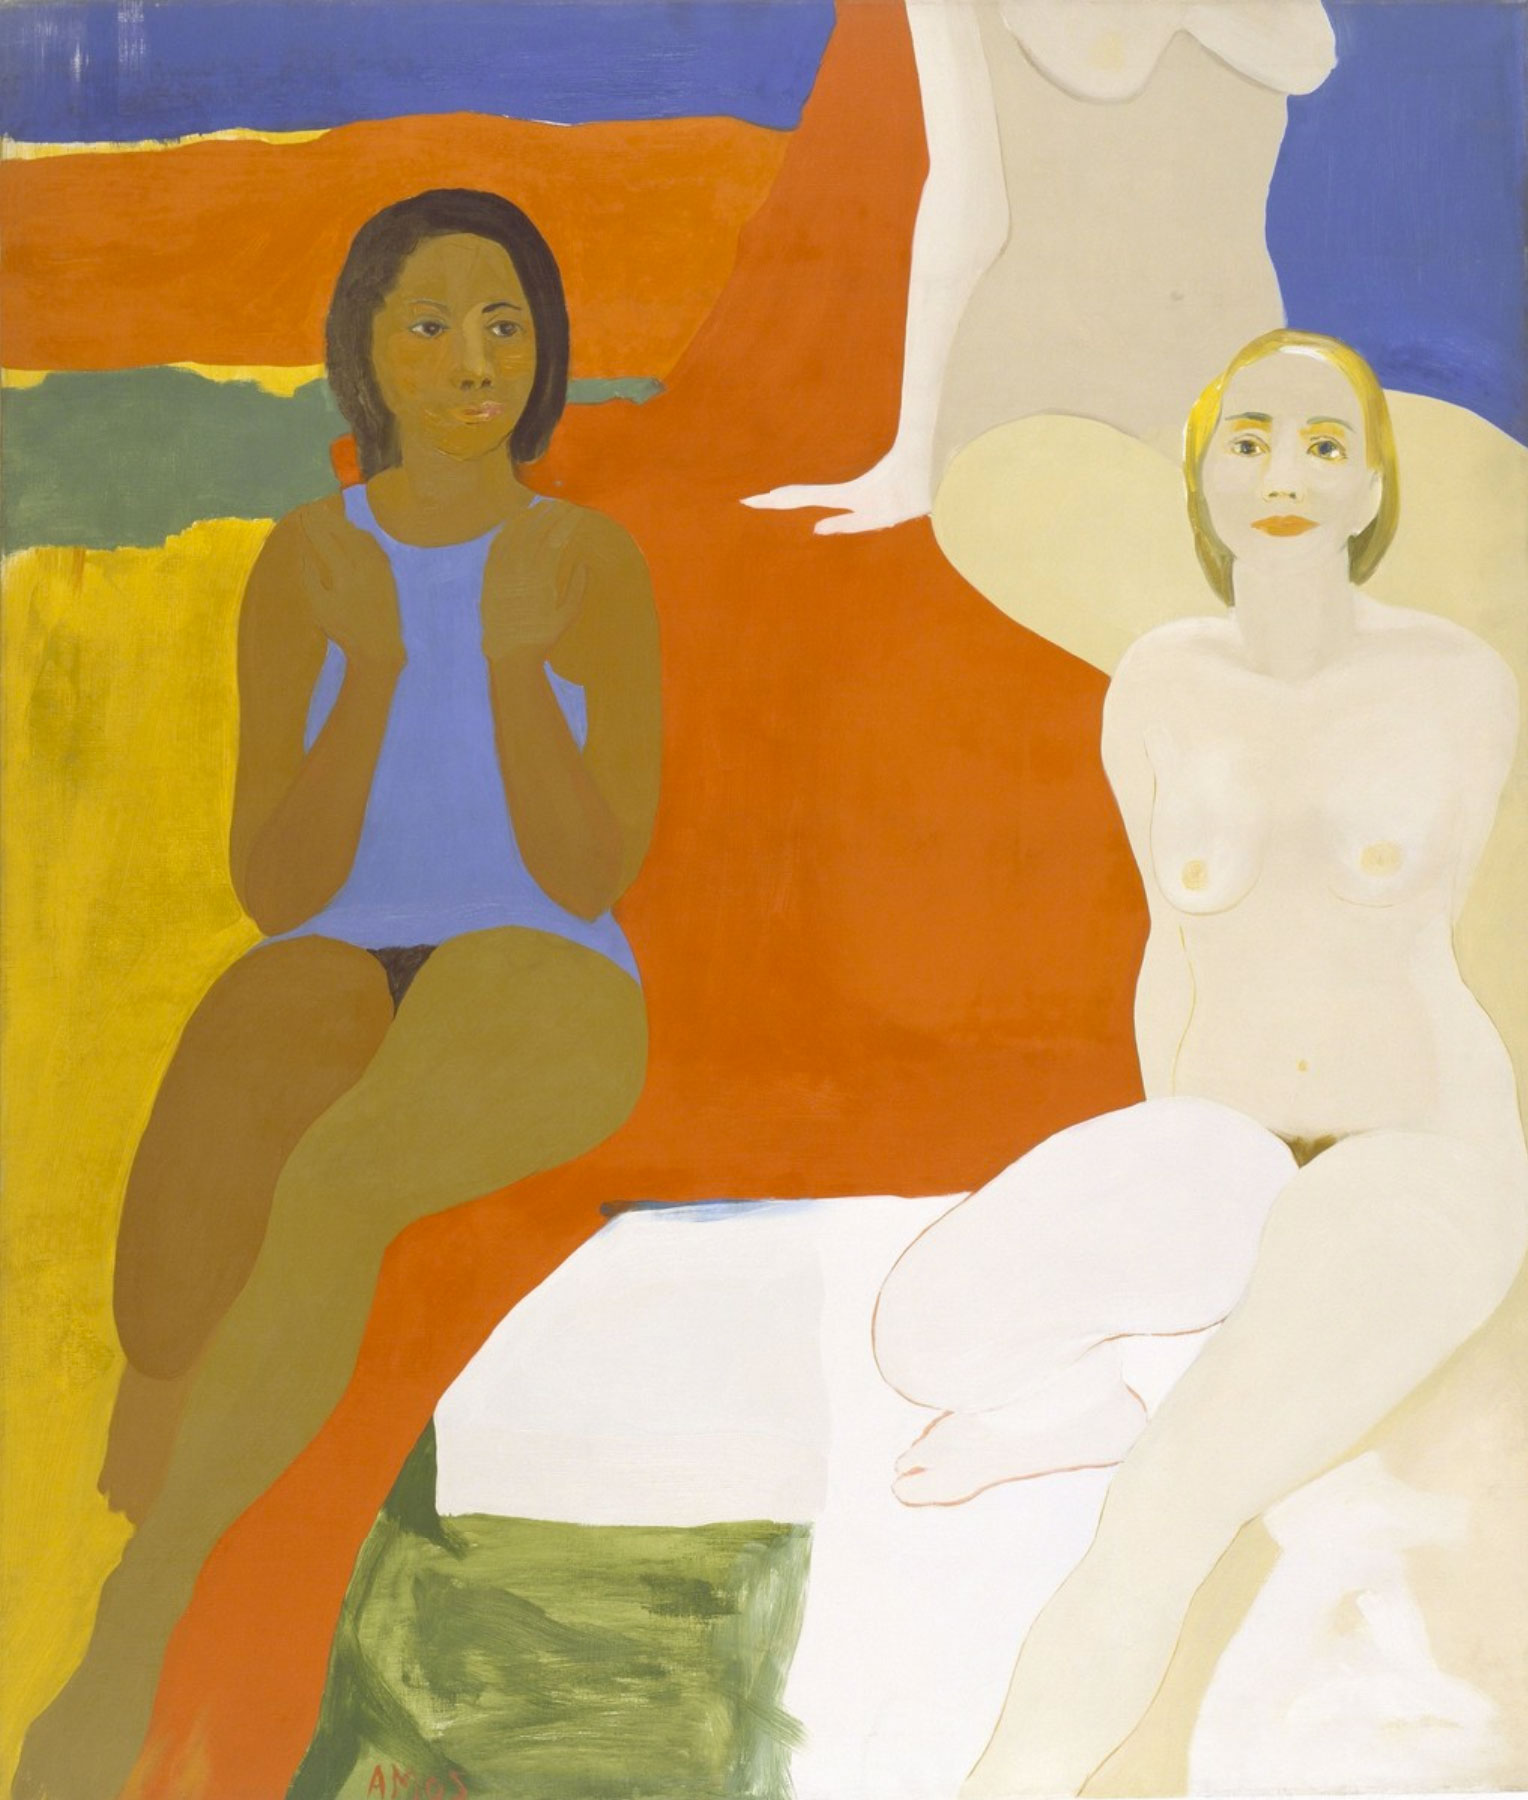 Emma-Amos-Three-Figures-1966